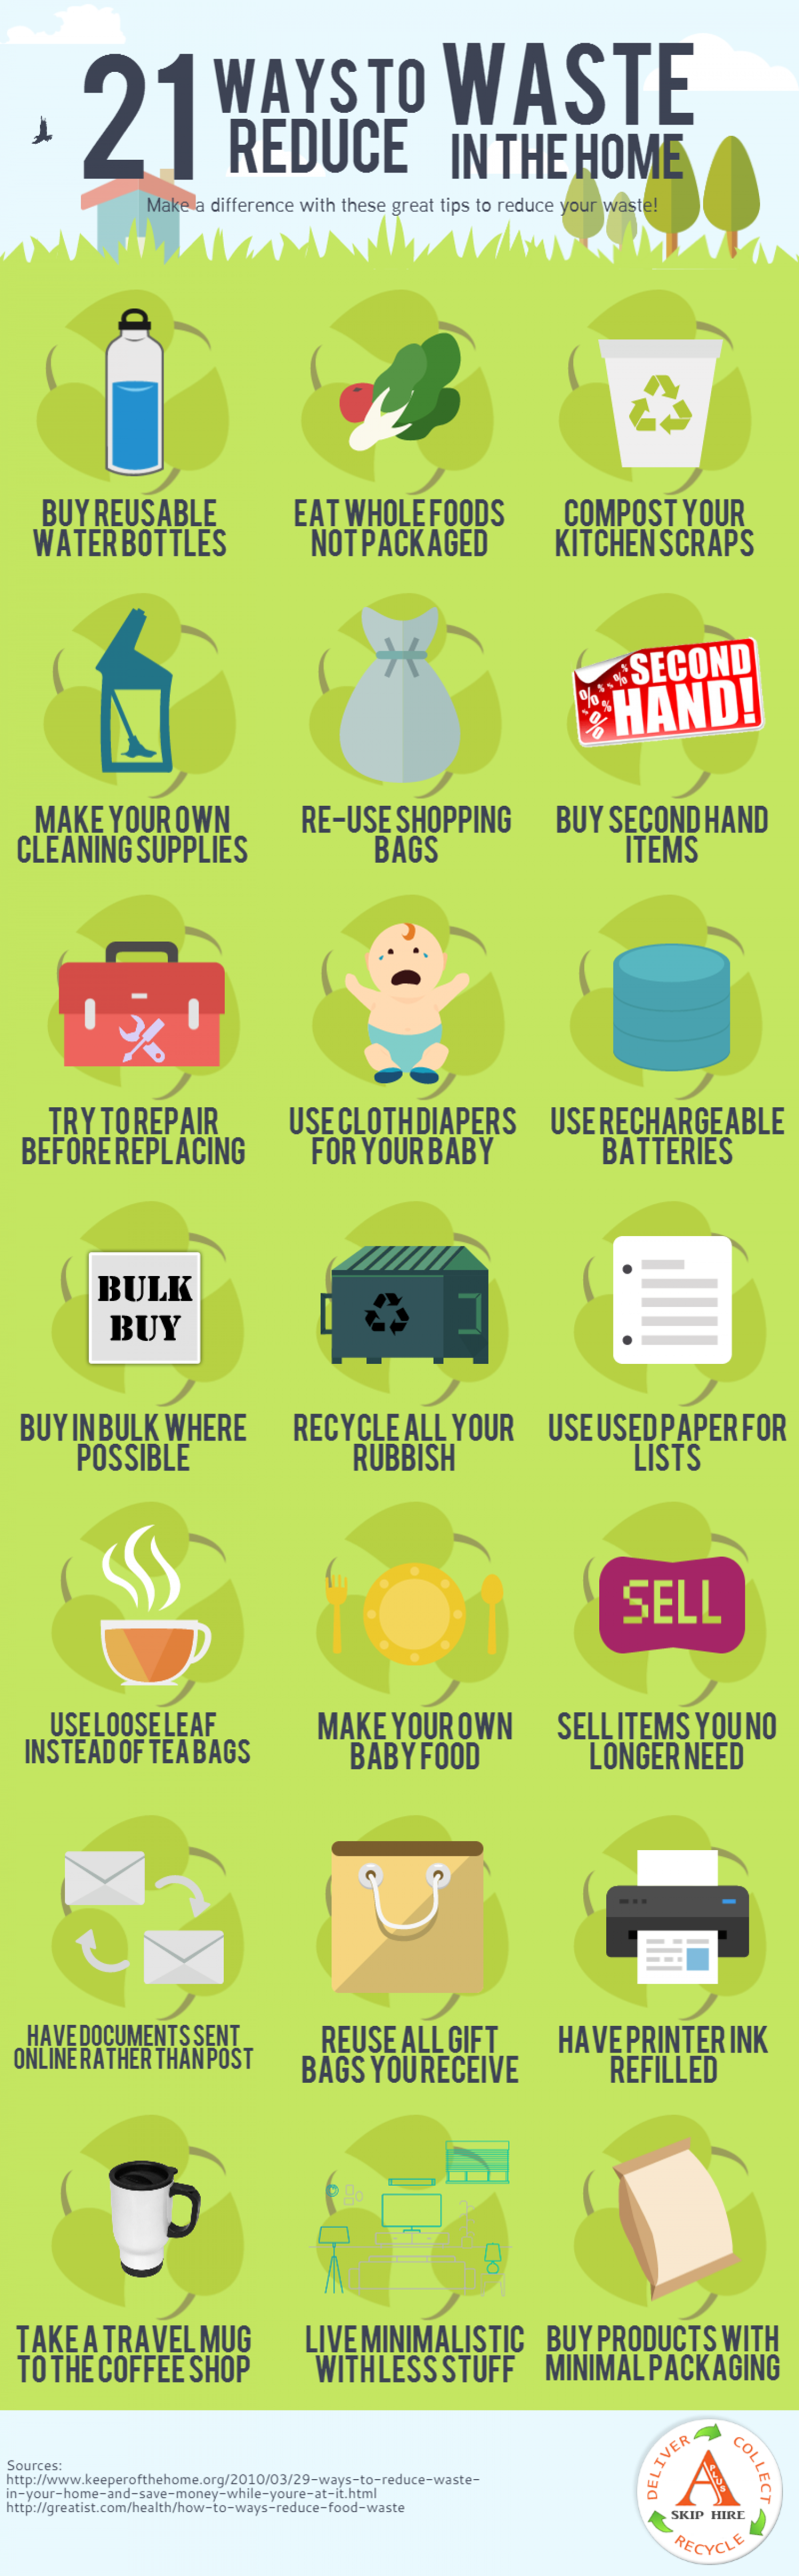 21 Ways to Reduce Waste in the Home Infographic